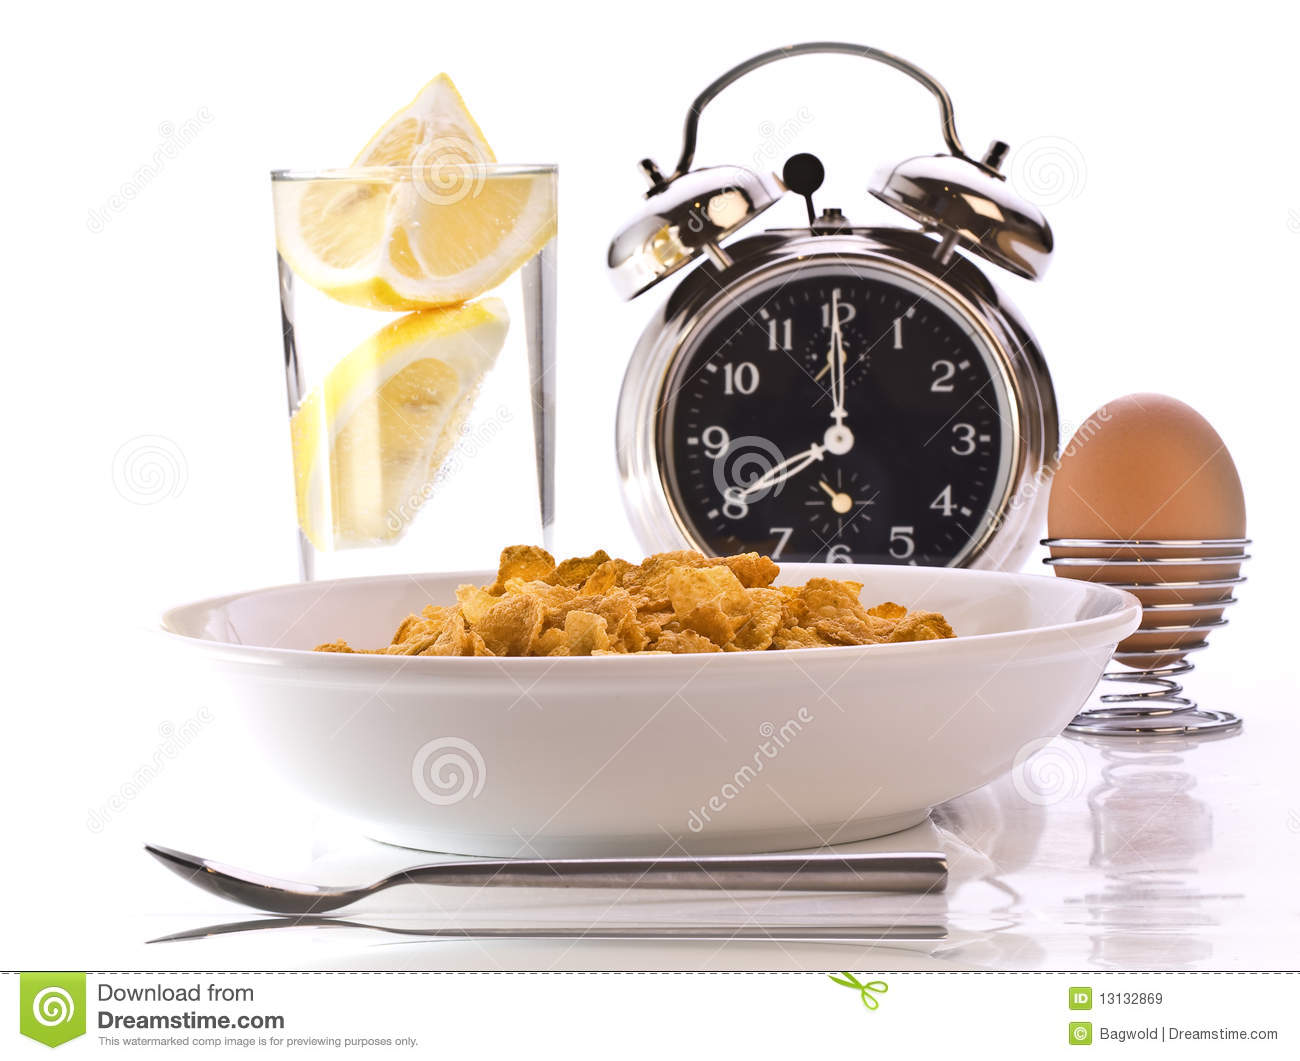 Breakfast Time Royalty Free Stock Images - Image: 13132869